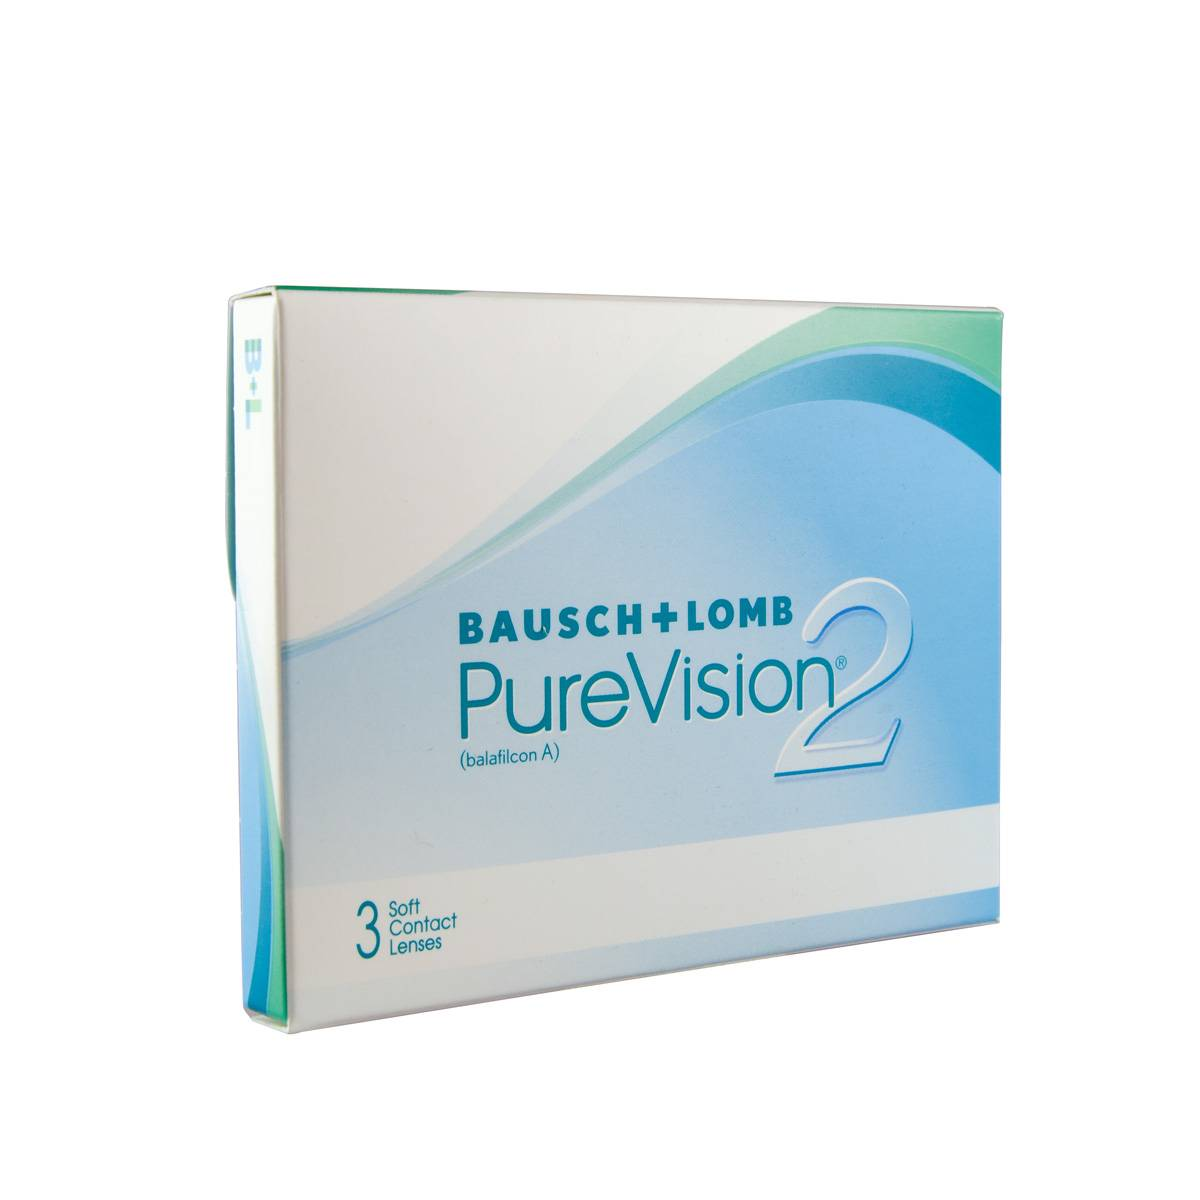 Bausch & Lomb Purevision 2 HD (3 Contact Lenses), CooperVision, Silicone Hydrogel Monthly Lenses, Balafilcon A